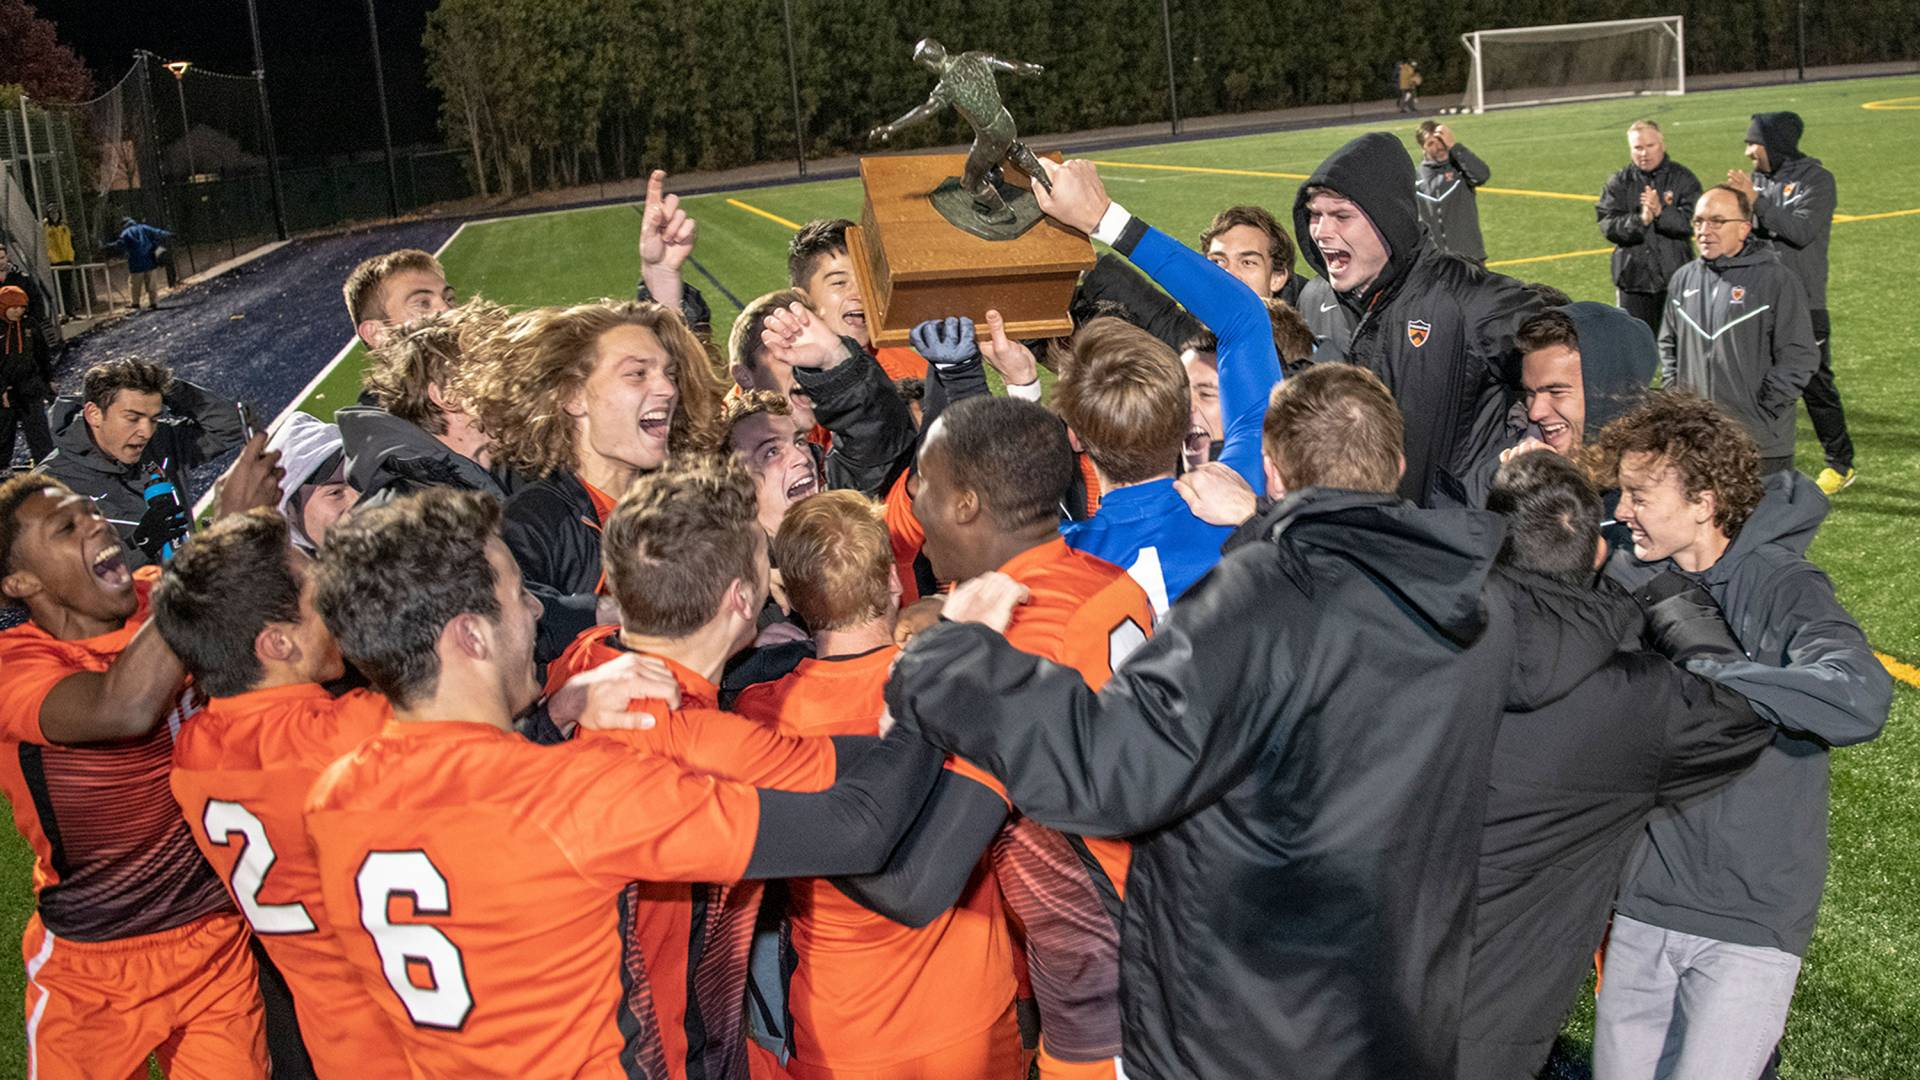 Soccer team celebrates and holds trophy